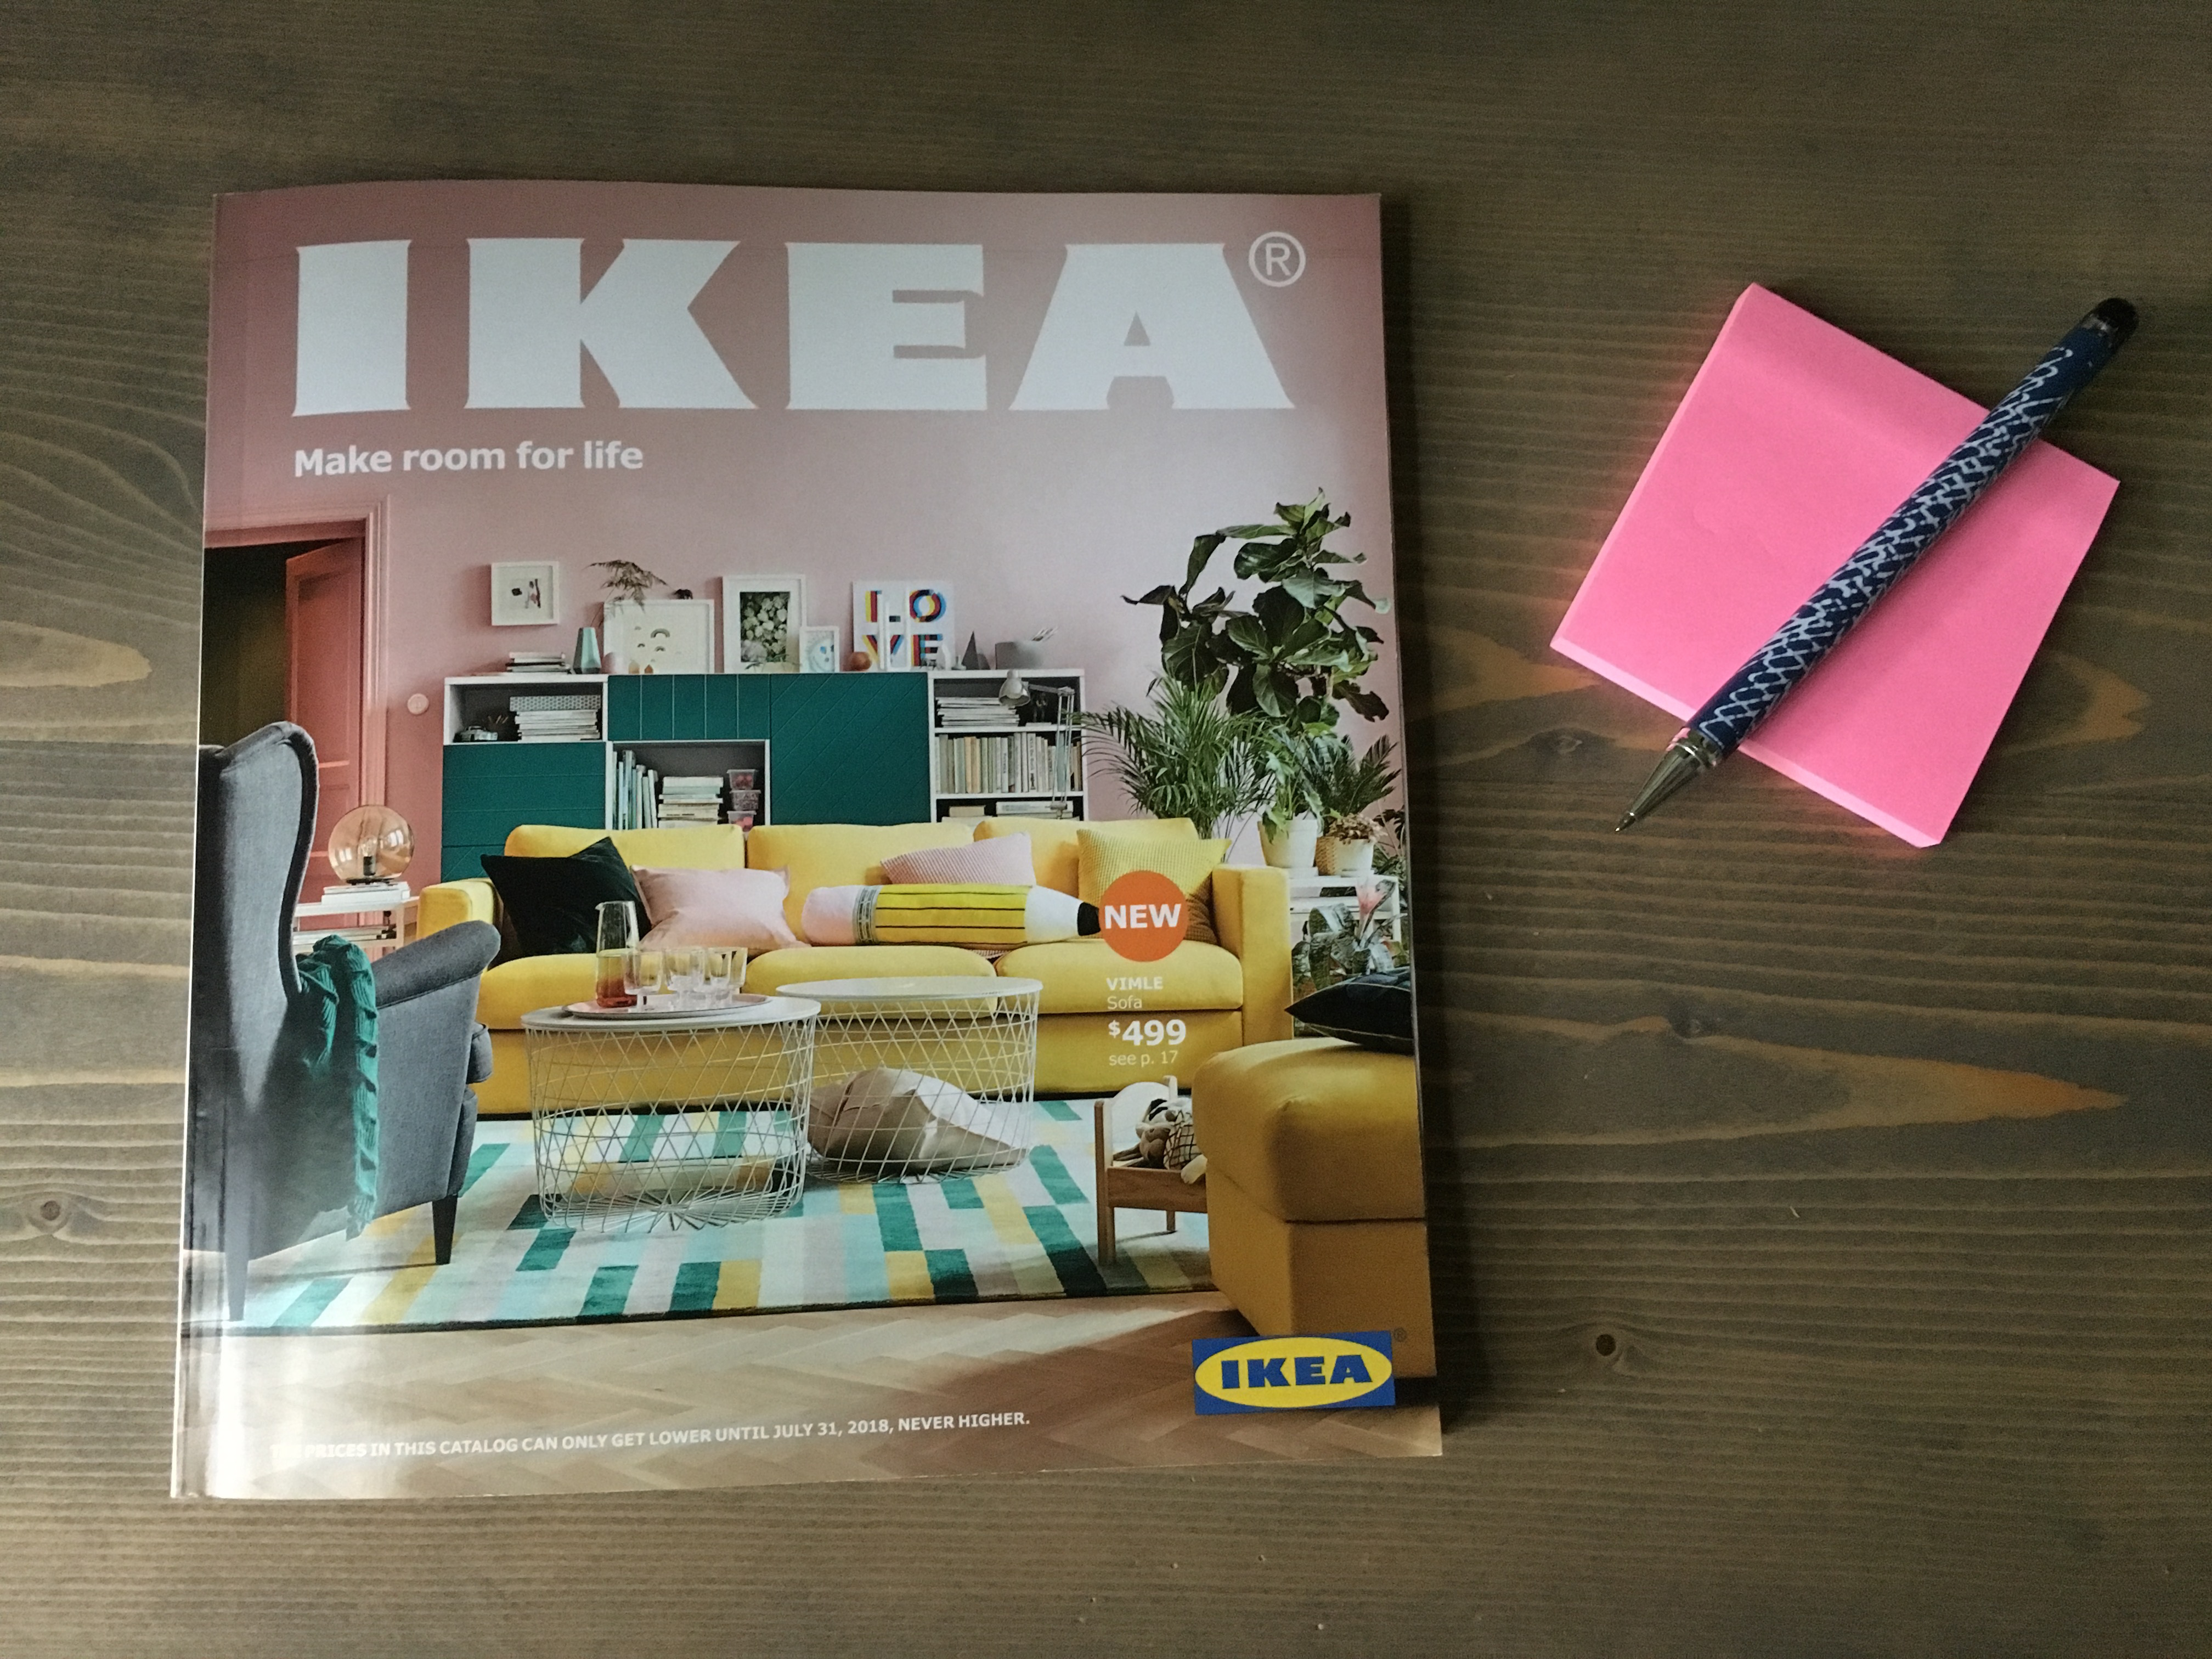 The Best Kitchen Finds In Ikeas 2018 Catalog For 25 Or Less Kitchn